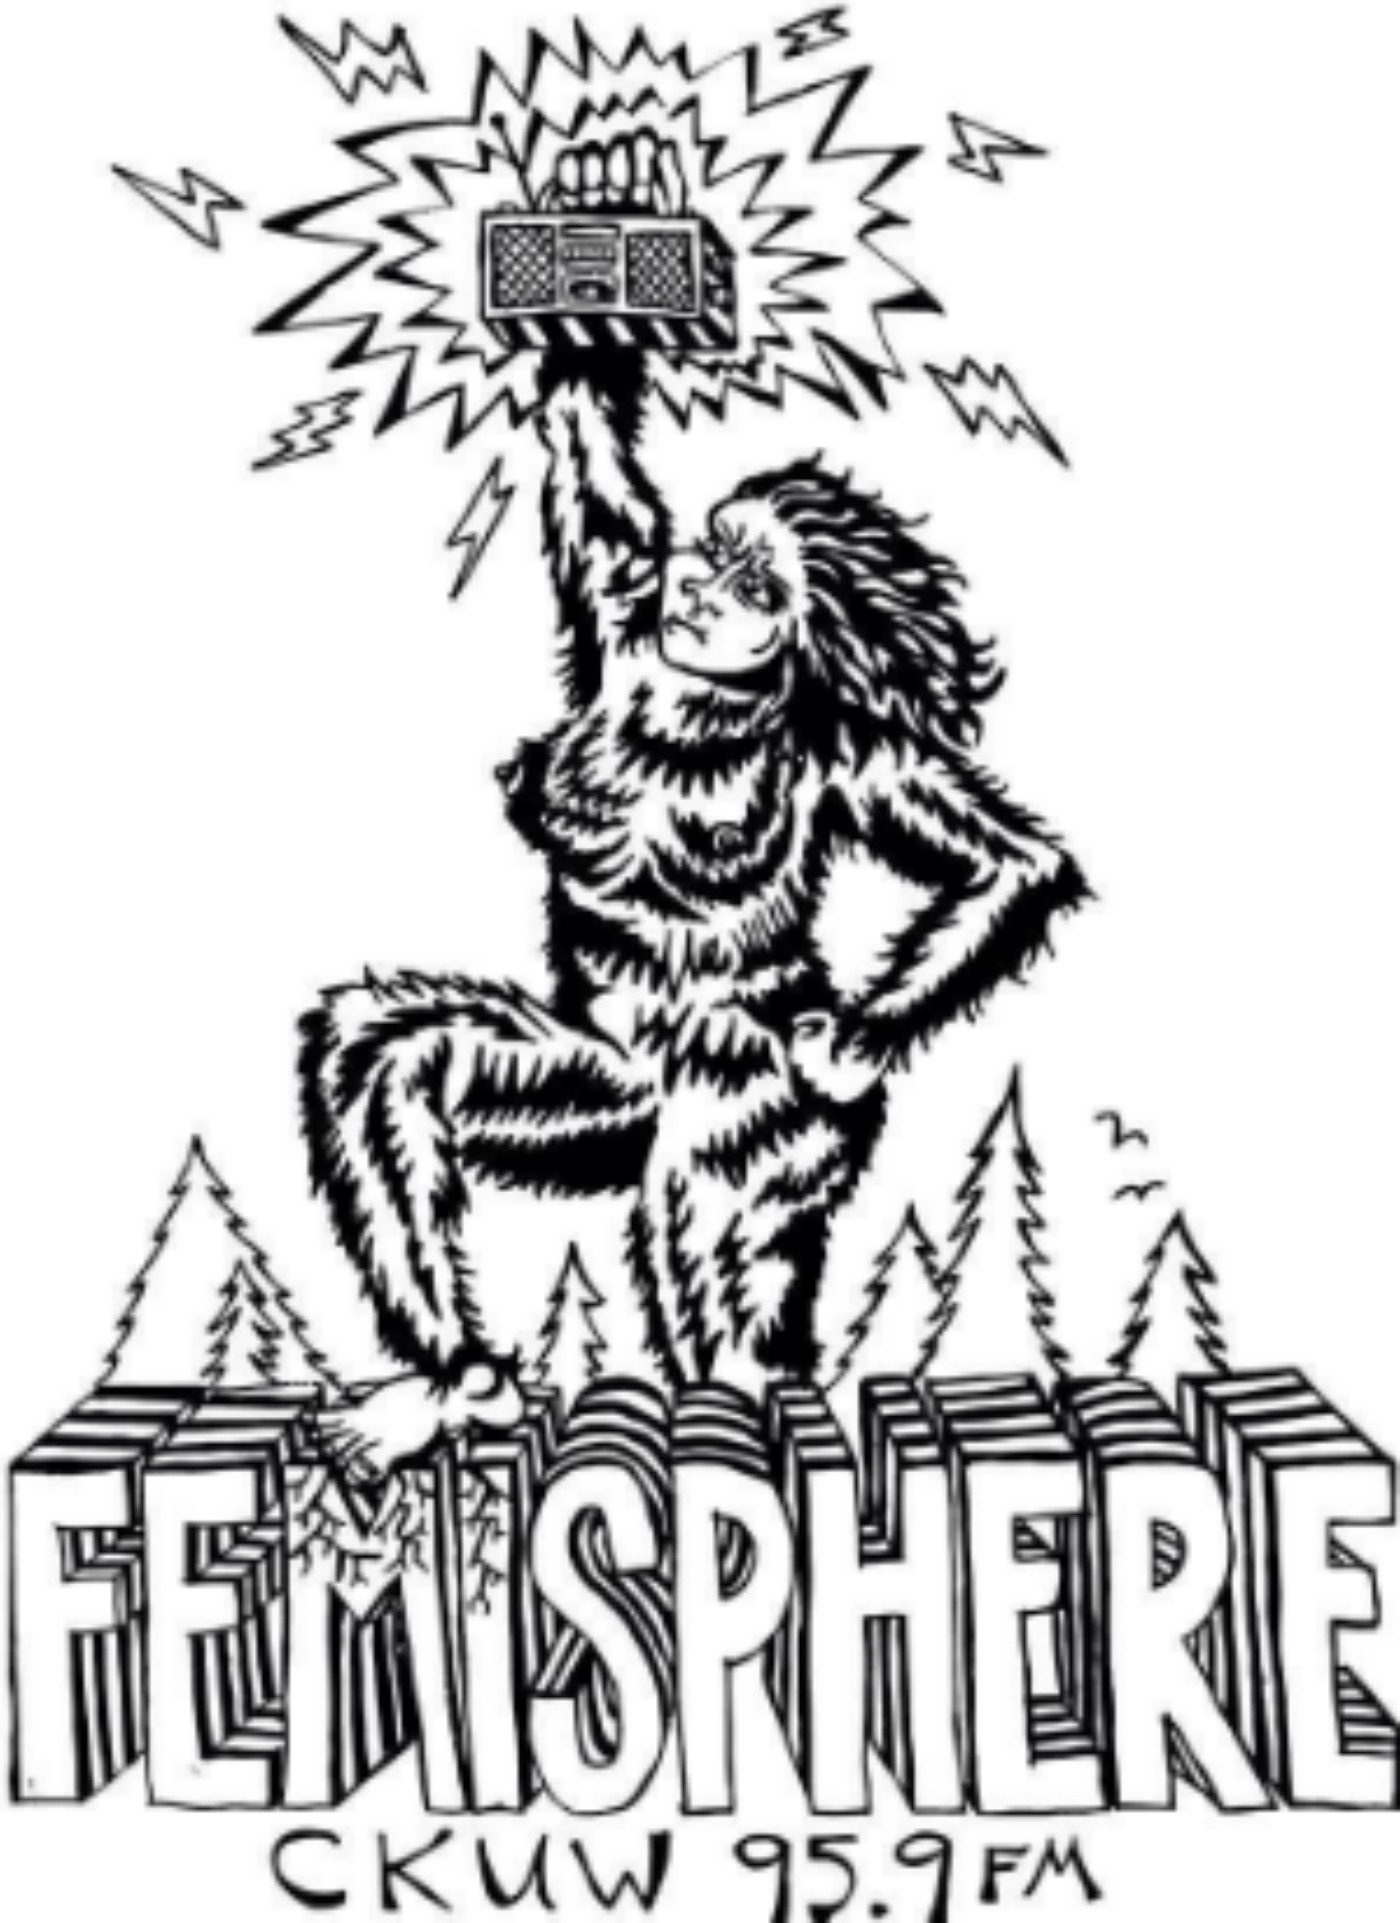 Podcast - Femisphere